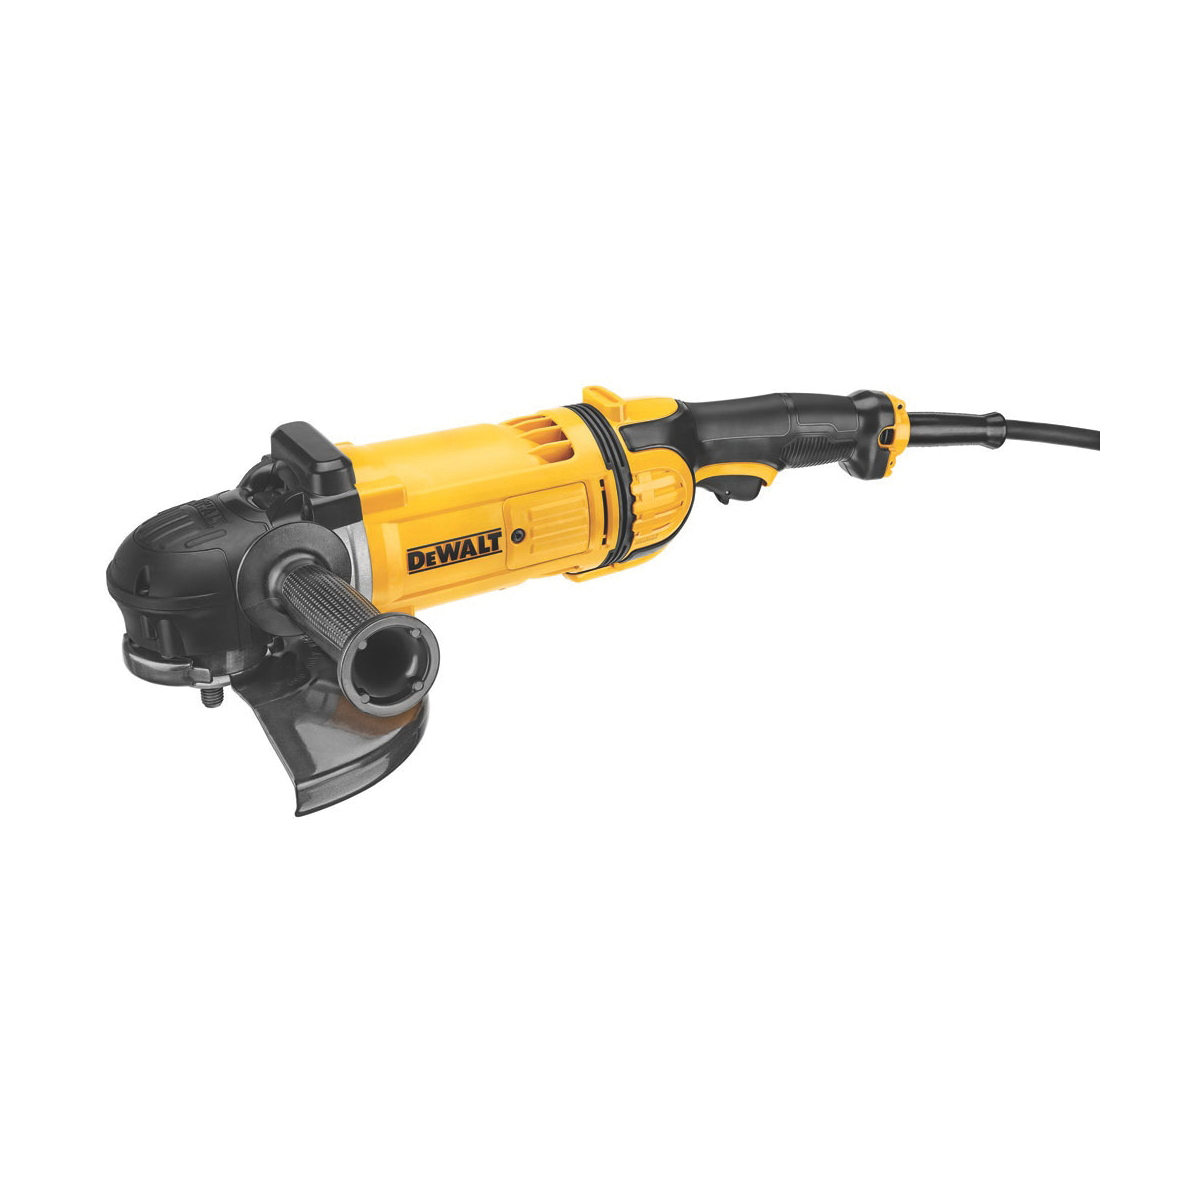 DeWALT® DWE4559CN Large Angle Grinder, 9 in Dia Wheel, 5/8-11 Arbor/Shank, 120 VAC, Yellow, Yes, Lock-Off Trigger Switch Switch